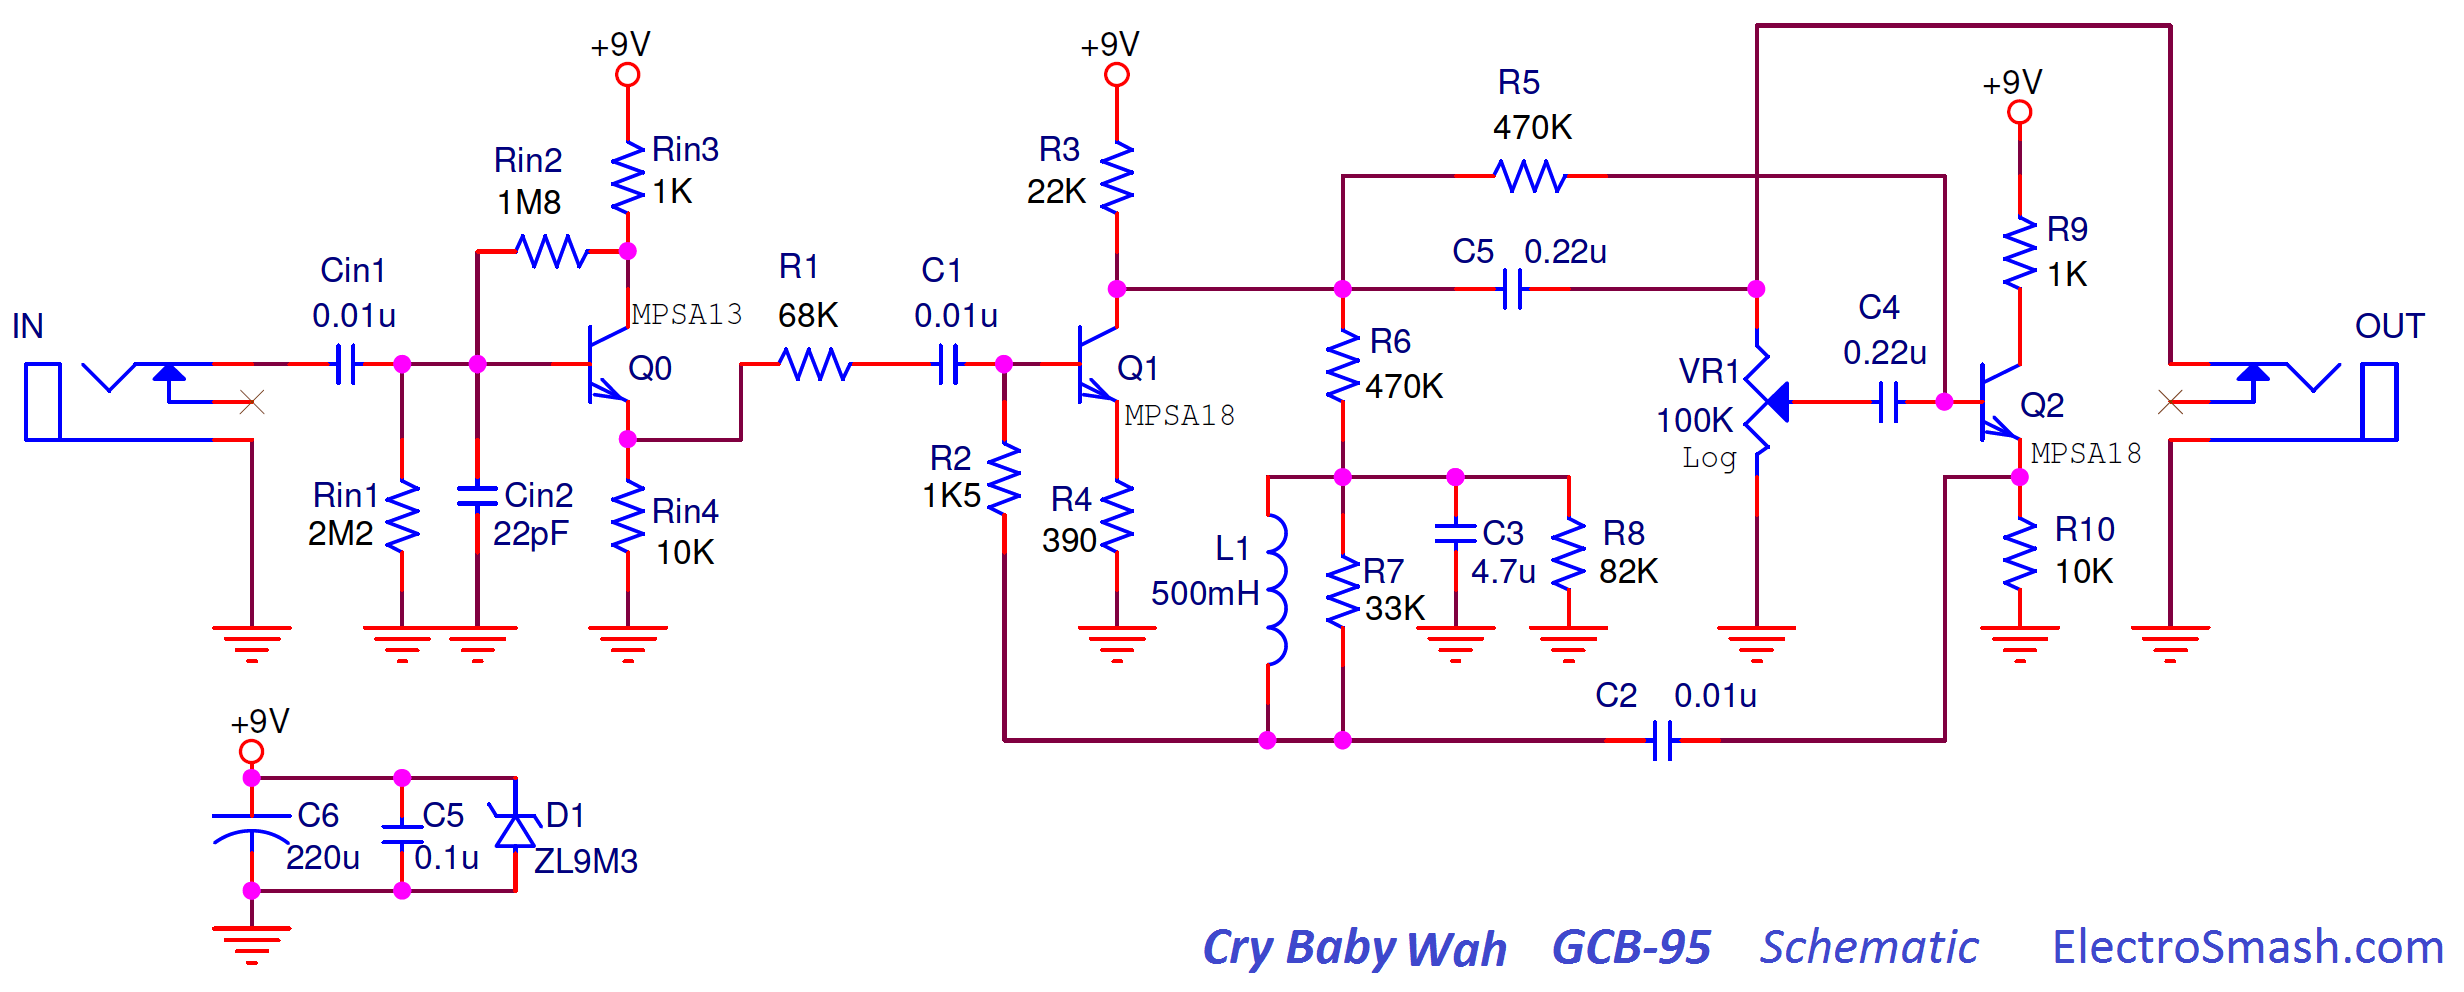 cry baby wah gcb 95 schematic electrosmash dunlop crybaby gcb 95 circuit analysis dunlop crybaby wiring diagram at eliteediting.co